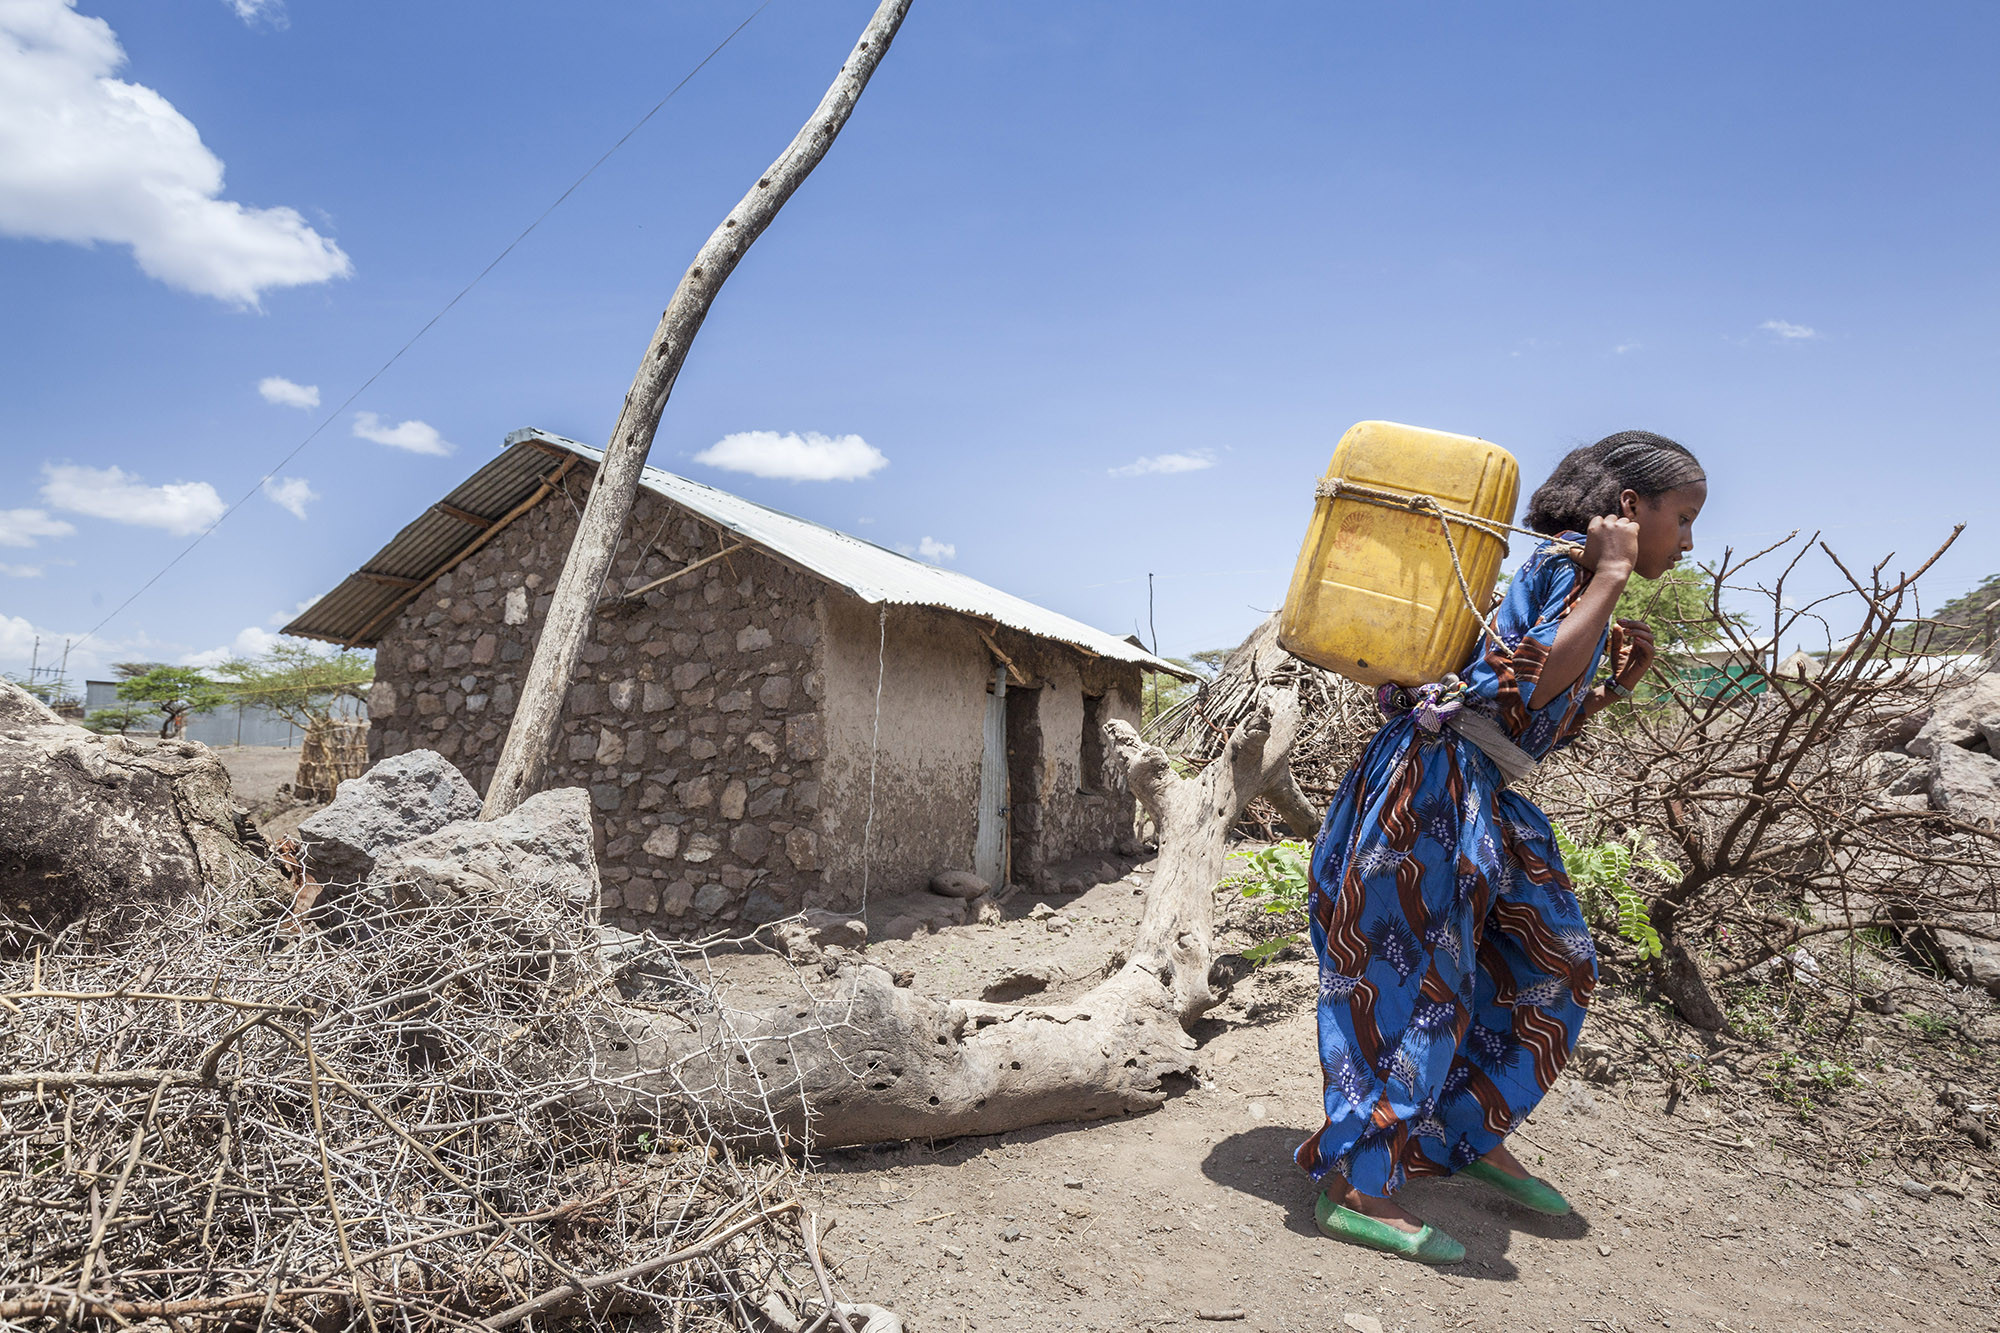 Sheshig, 13, lives in a town outside Lalibela, Ethiopia. Over the past few years, the El Nino-induced drought has had a major impact on her education, as she's often had to fetch water rather than go to school